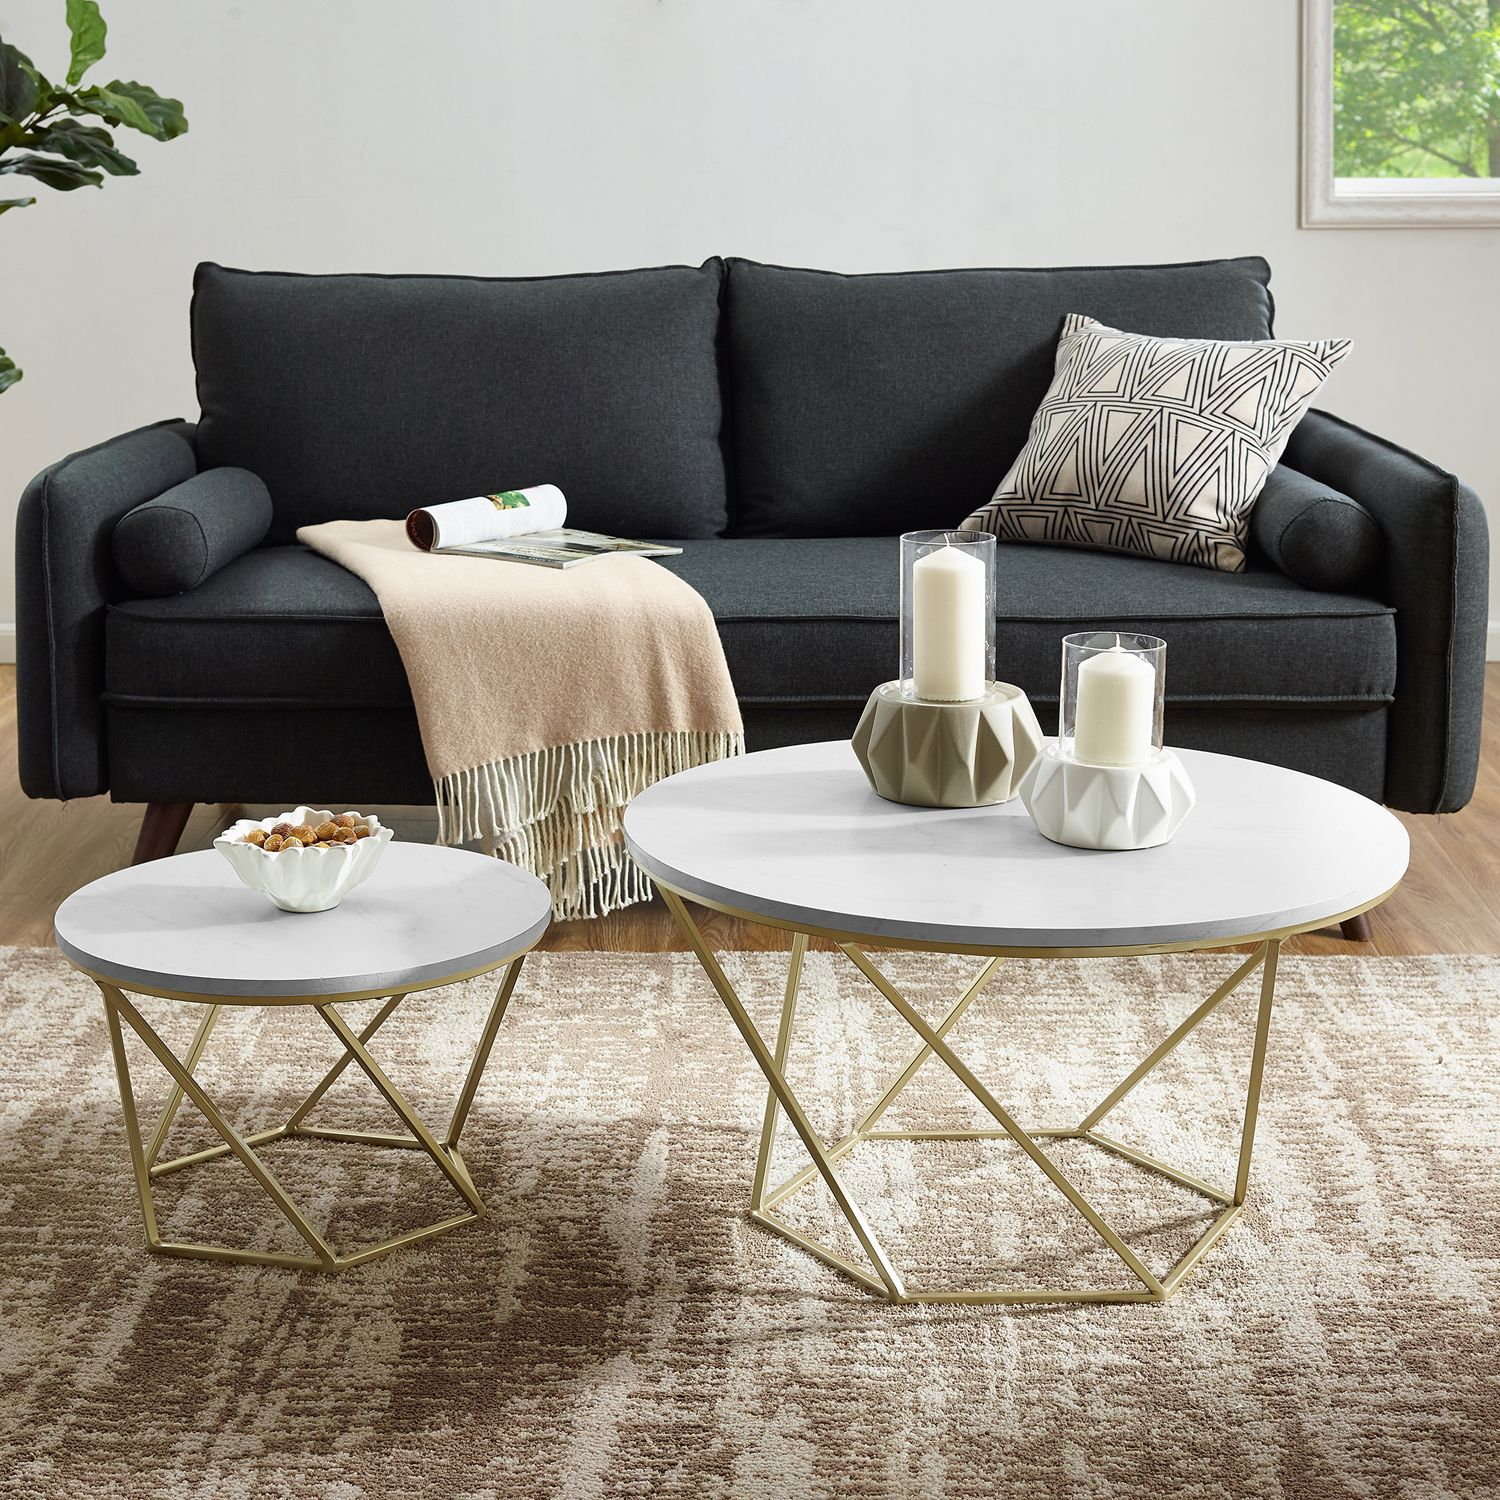 Geometric White Faux Marble Gold Nesting Coffee Tables Pier 1 Imports Nesting Coffee Tables Gold Nesting Coffee Table Coffee Table [ 1500 x 1500 Pixel ]